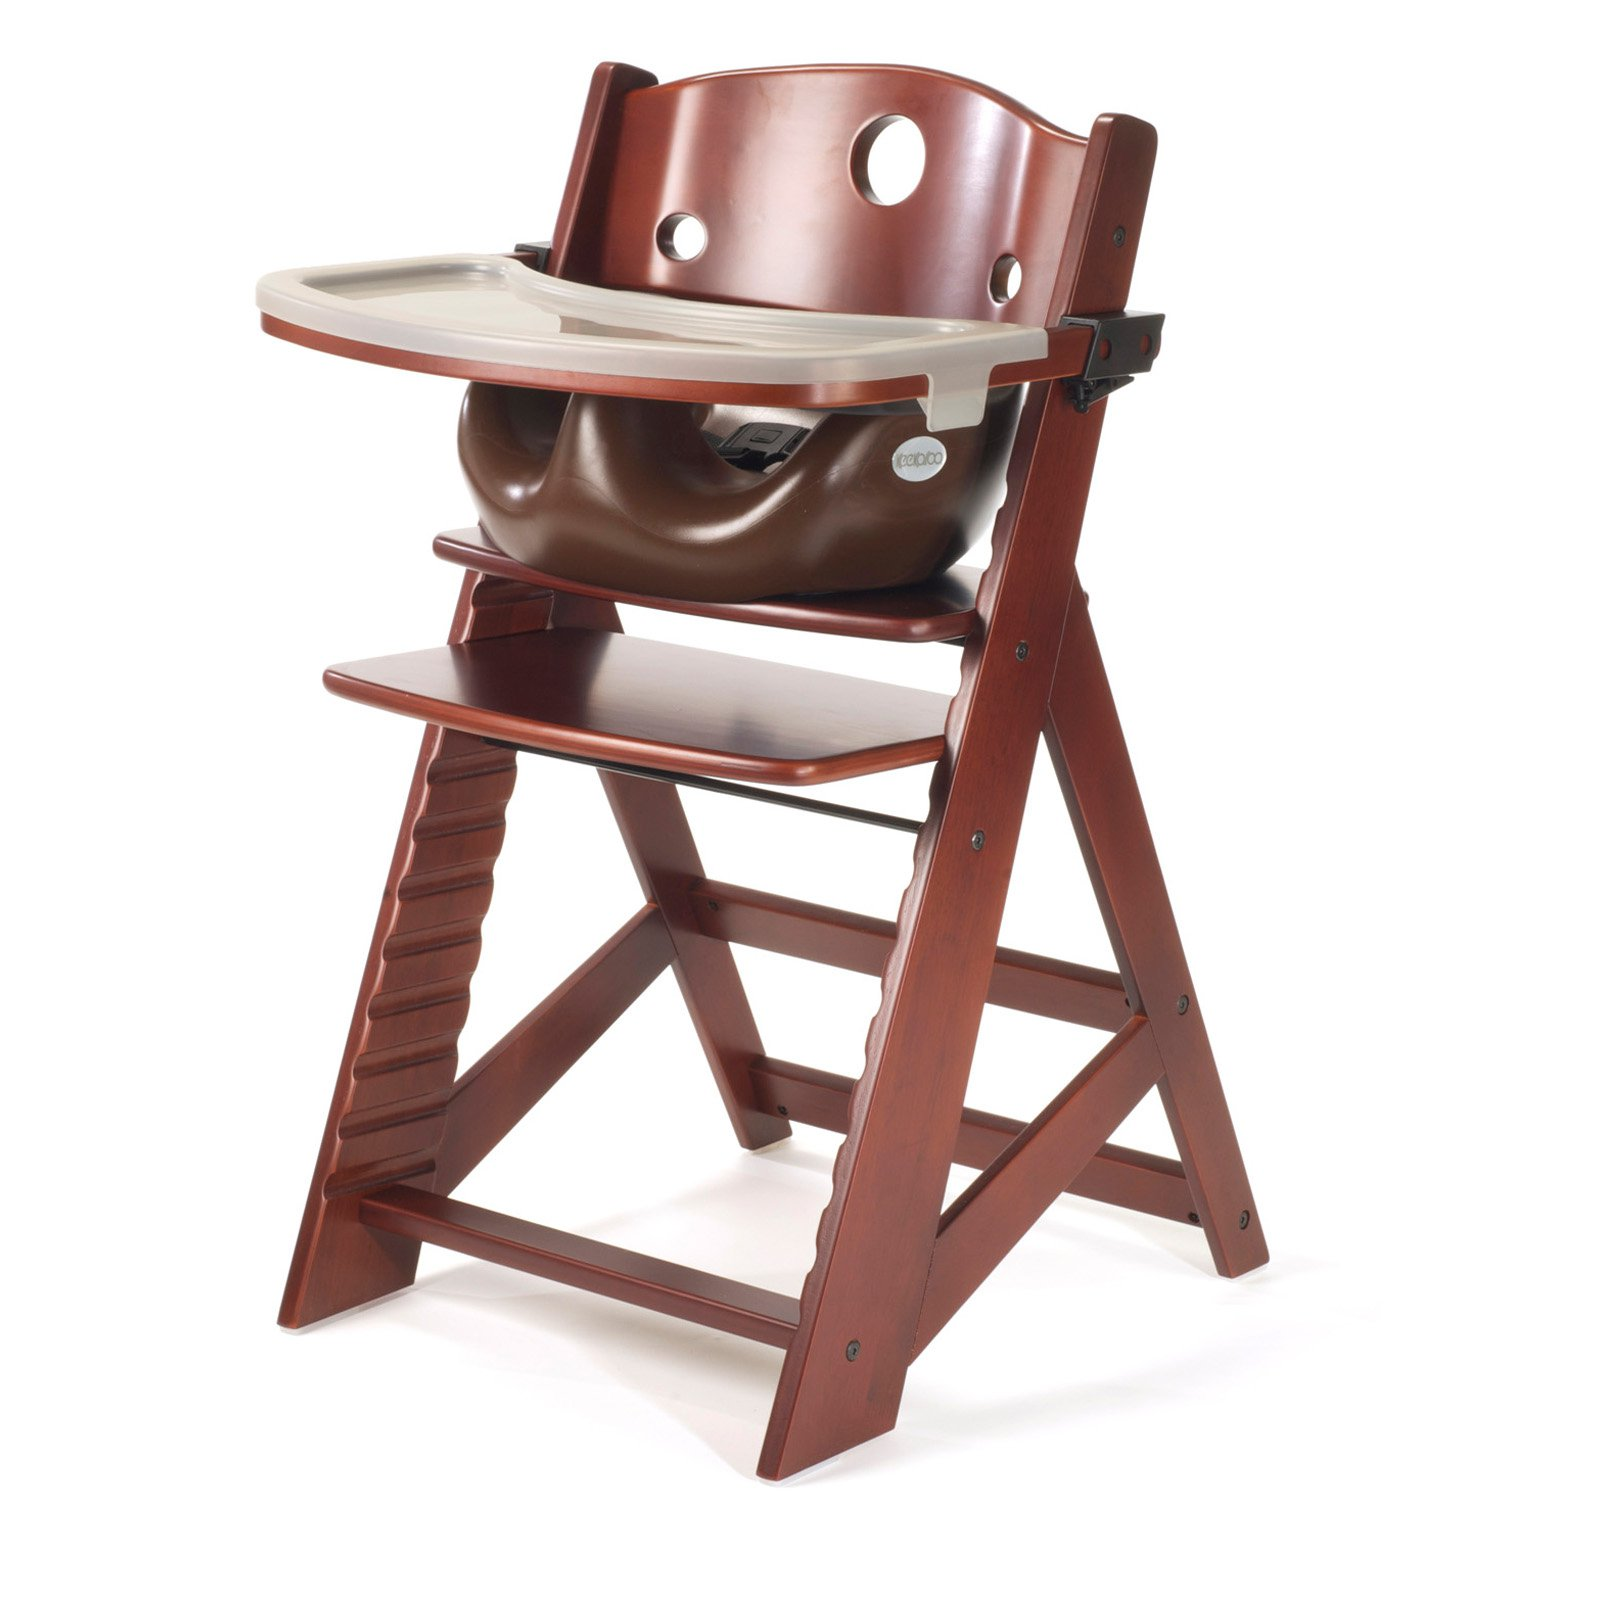 Keekaroo Height Right High Chair Mahogany with Chocolate Infant Insert and Tray